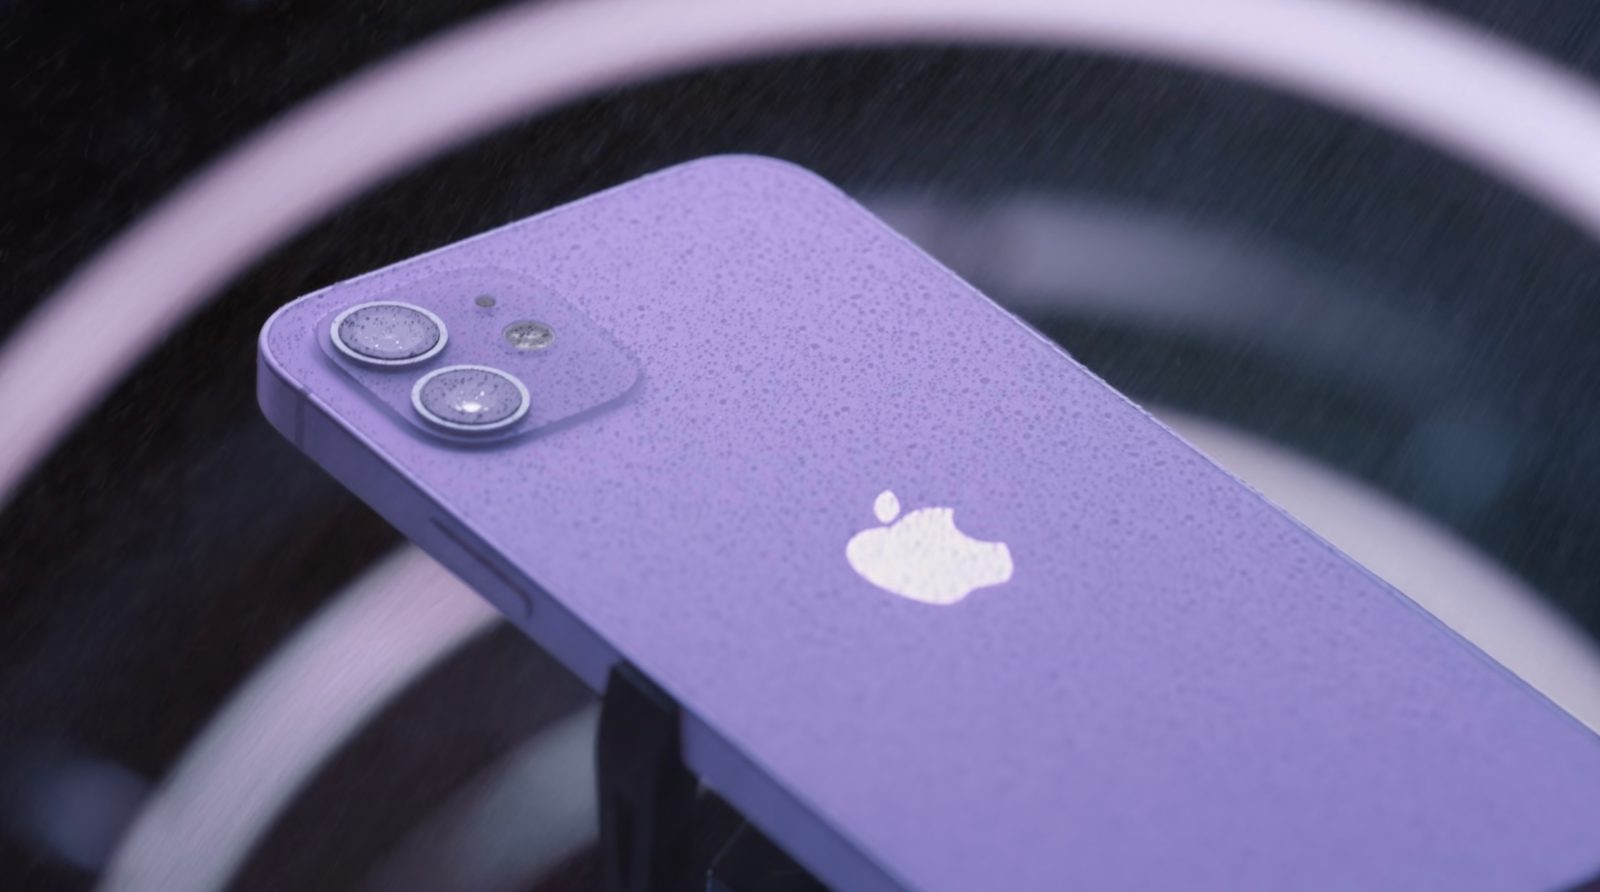 Poll: Are you planning to buy the new purple iPhone 12?